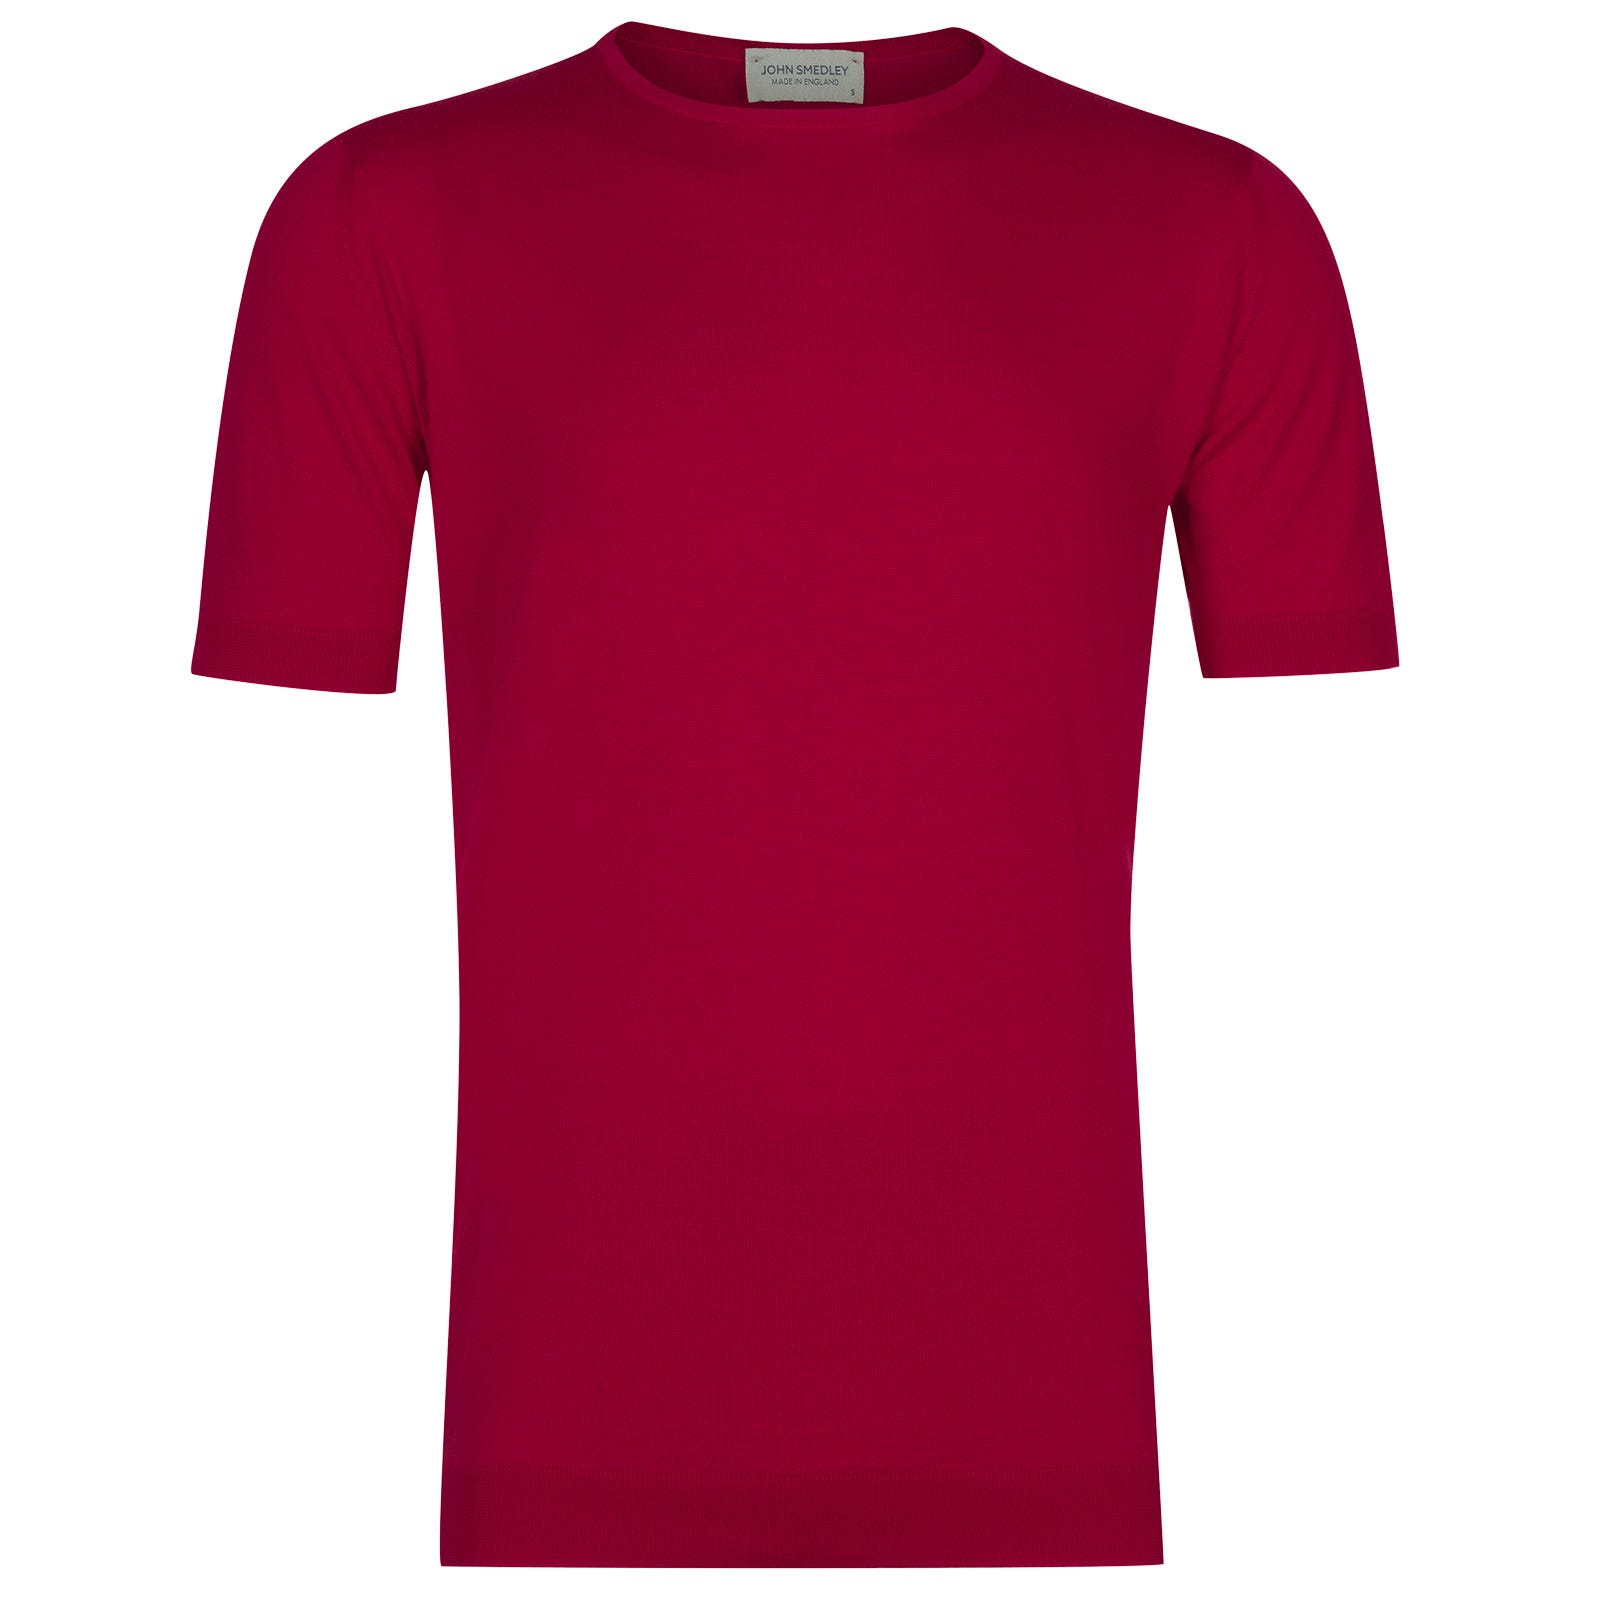 John Smedley belden Sea Island Cotton T-shirt in Scarlet Sky-XXL